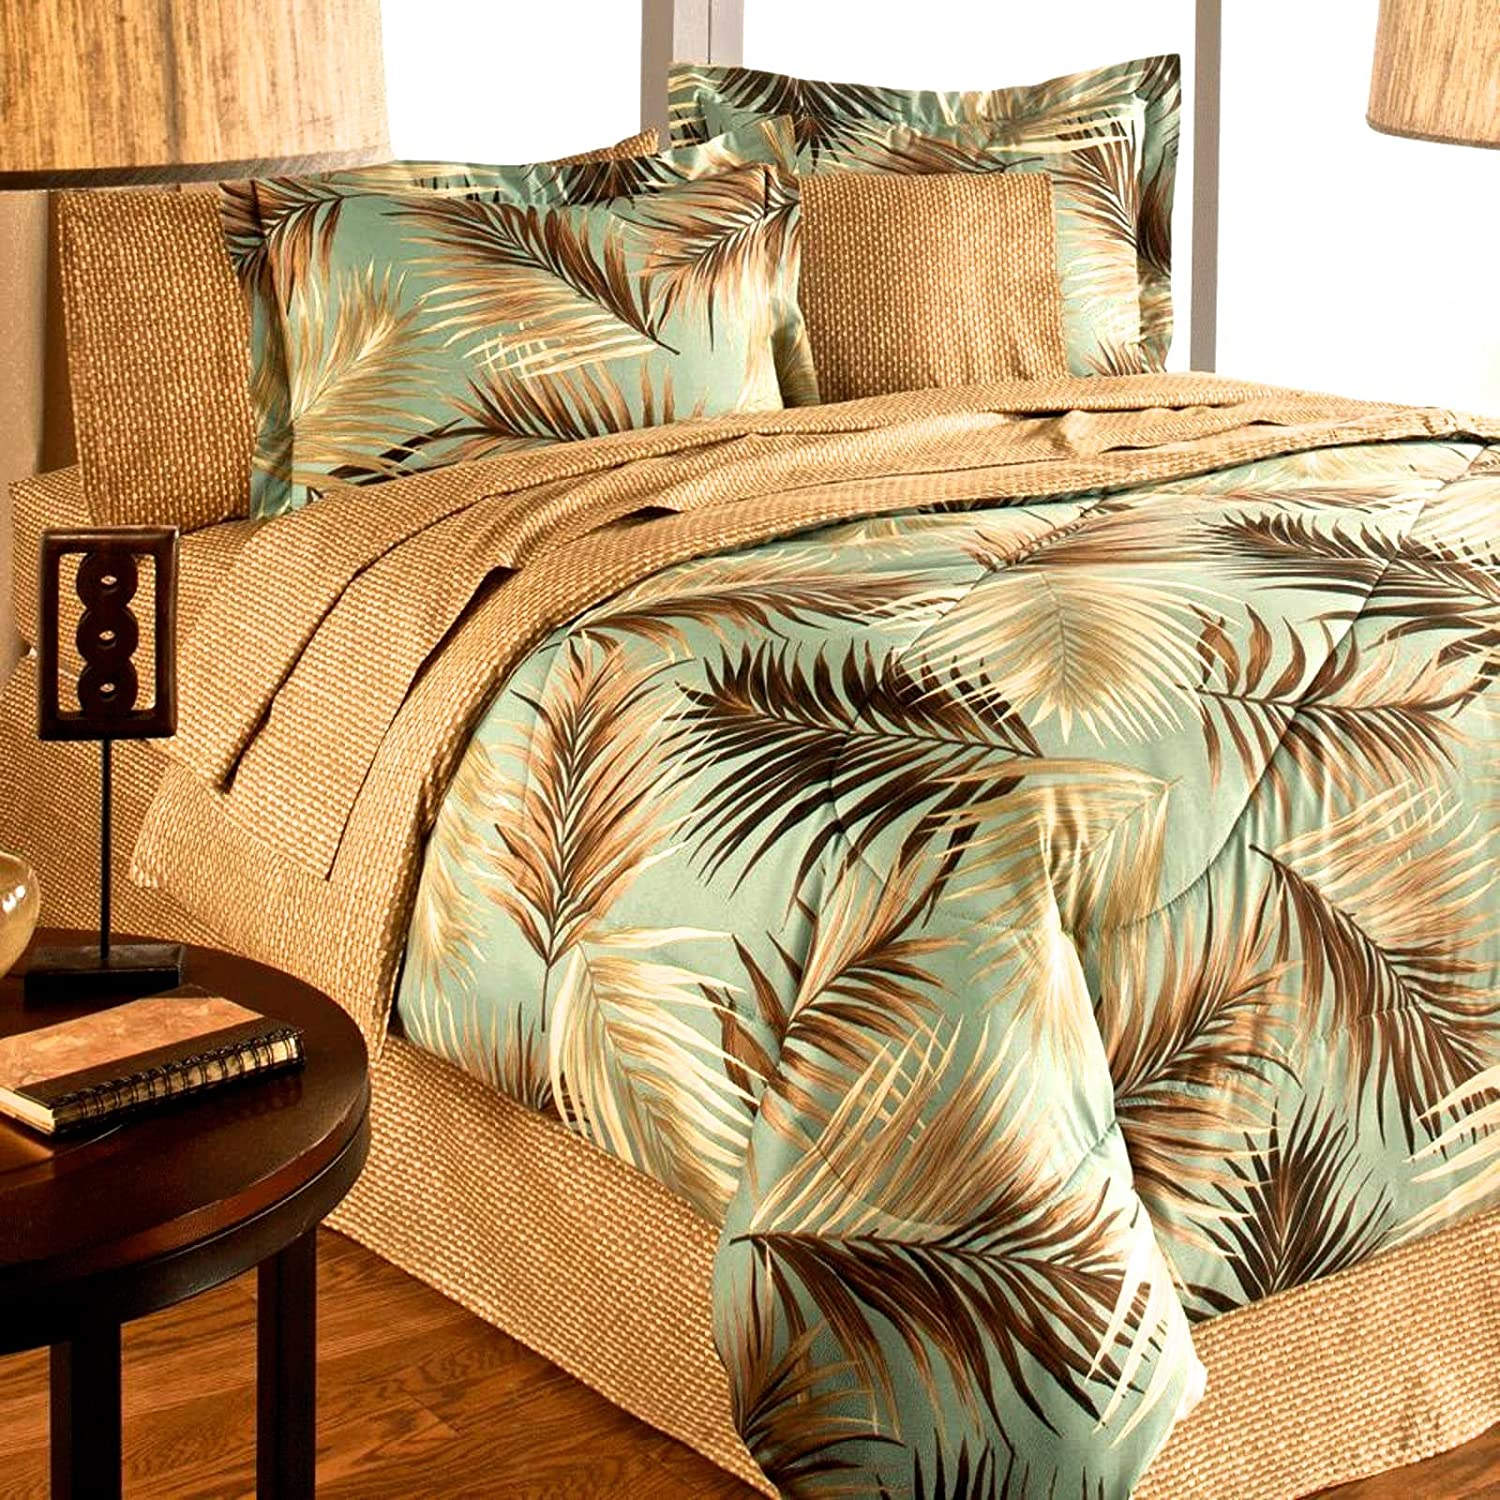 Lauren Cole Tropical Palm Tree Leaf/Leaves Ocean Beach Coastal Bedding Comforter Set Bed in a Bag (King Size)